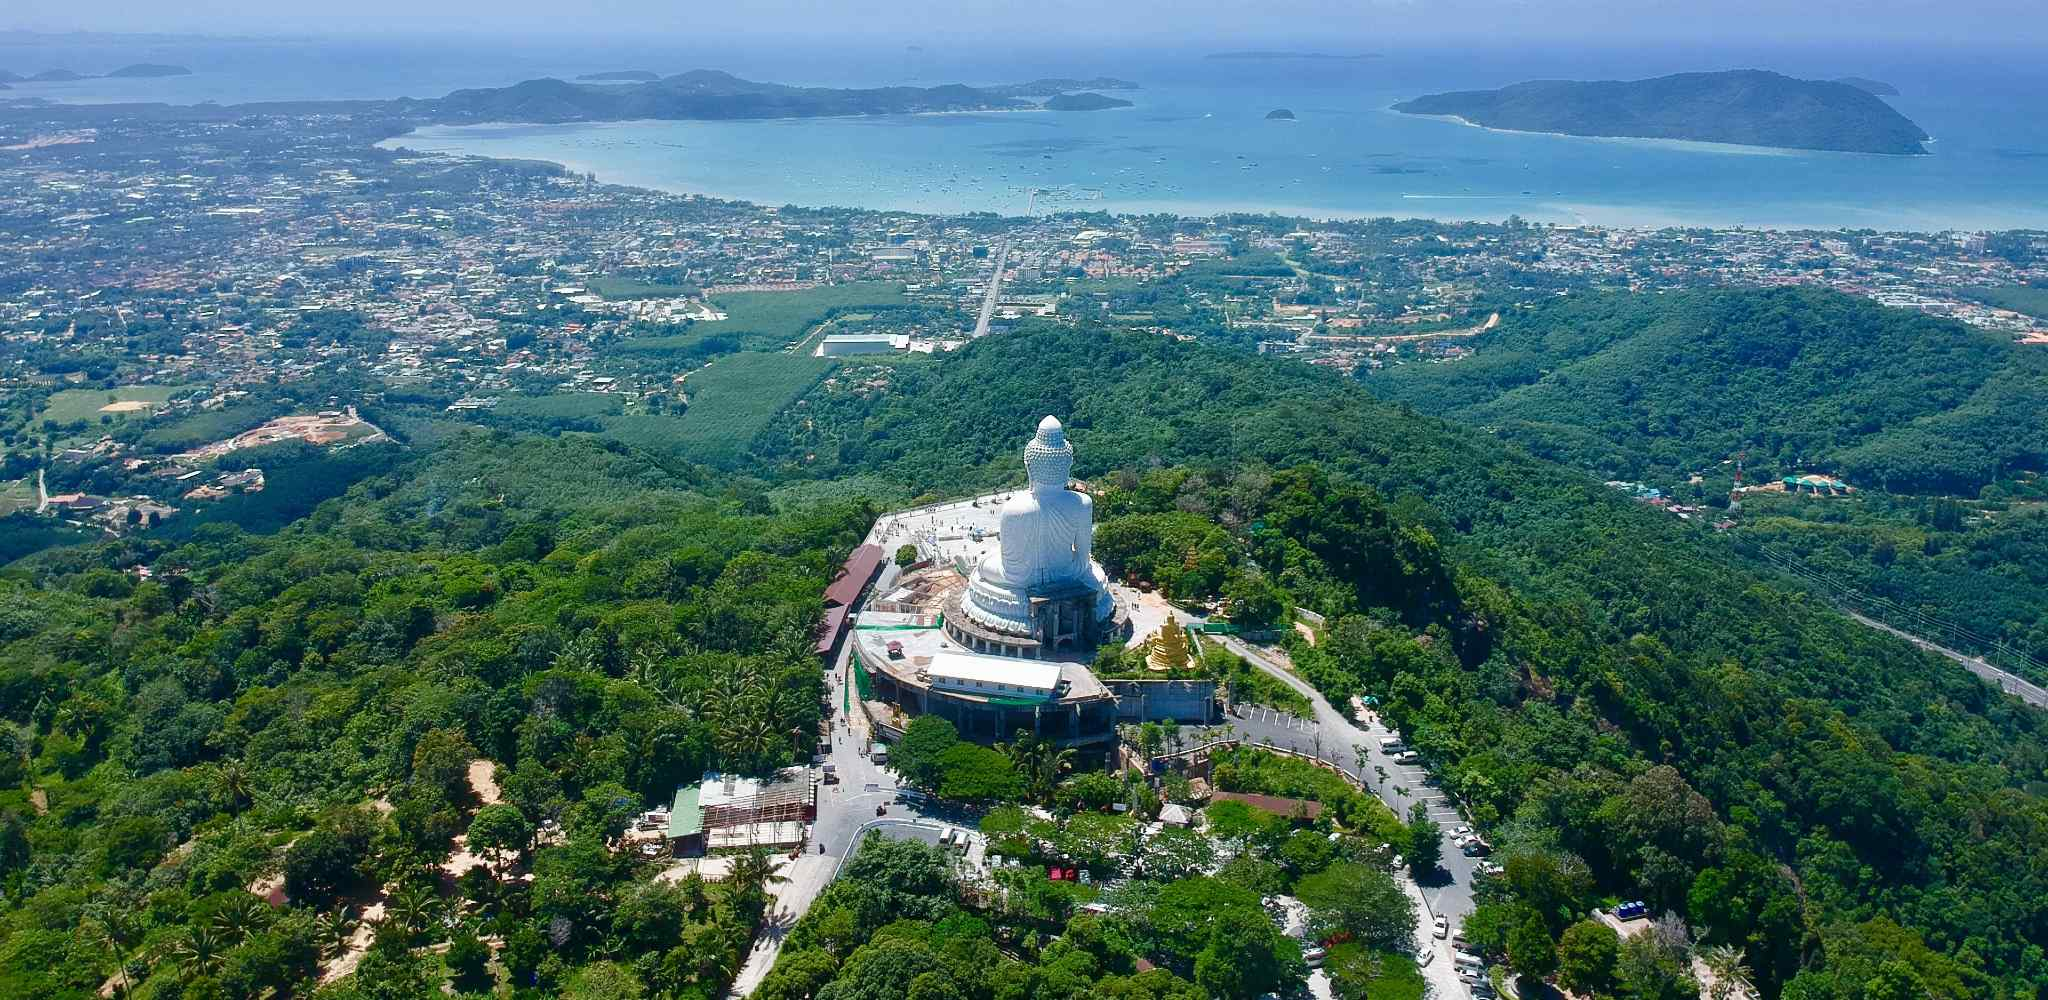 The Giant Buddha of Phuket with a view over the island